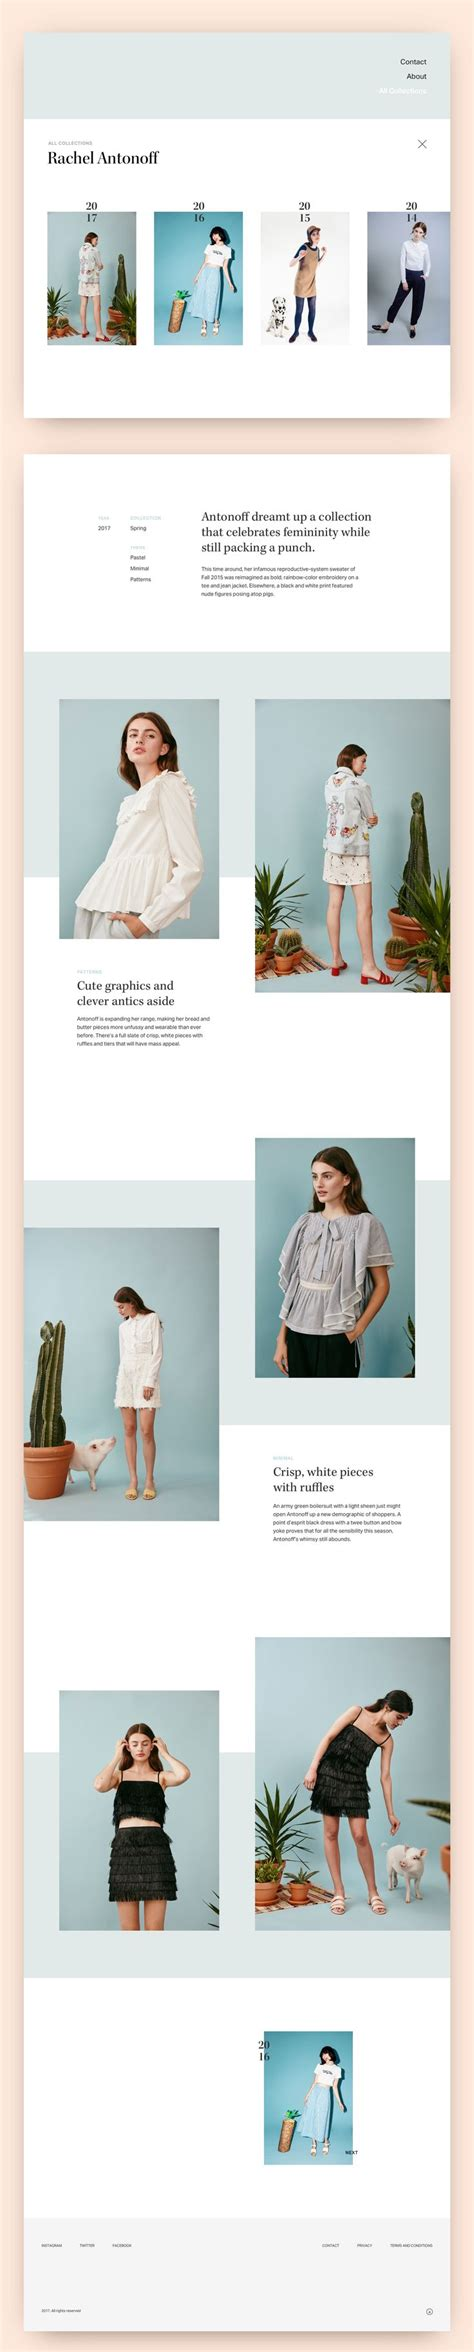 layout manager collection 25 best ideas about product design portfolio on pinterest